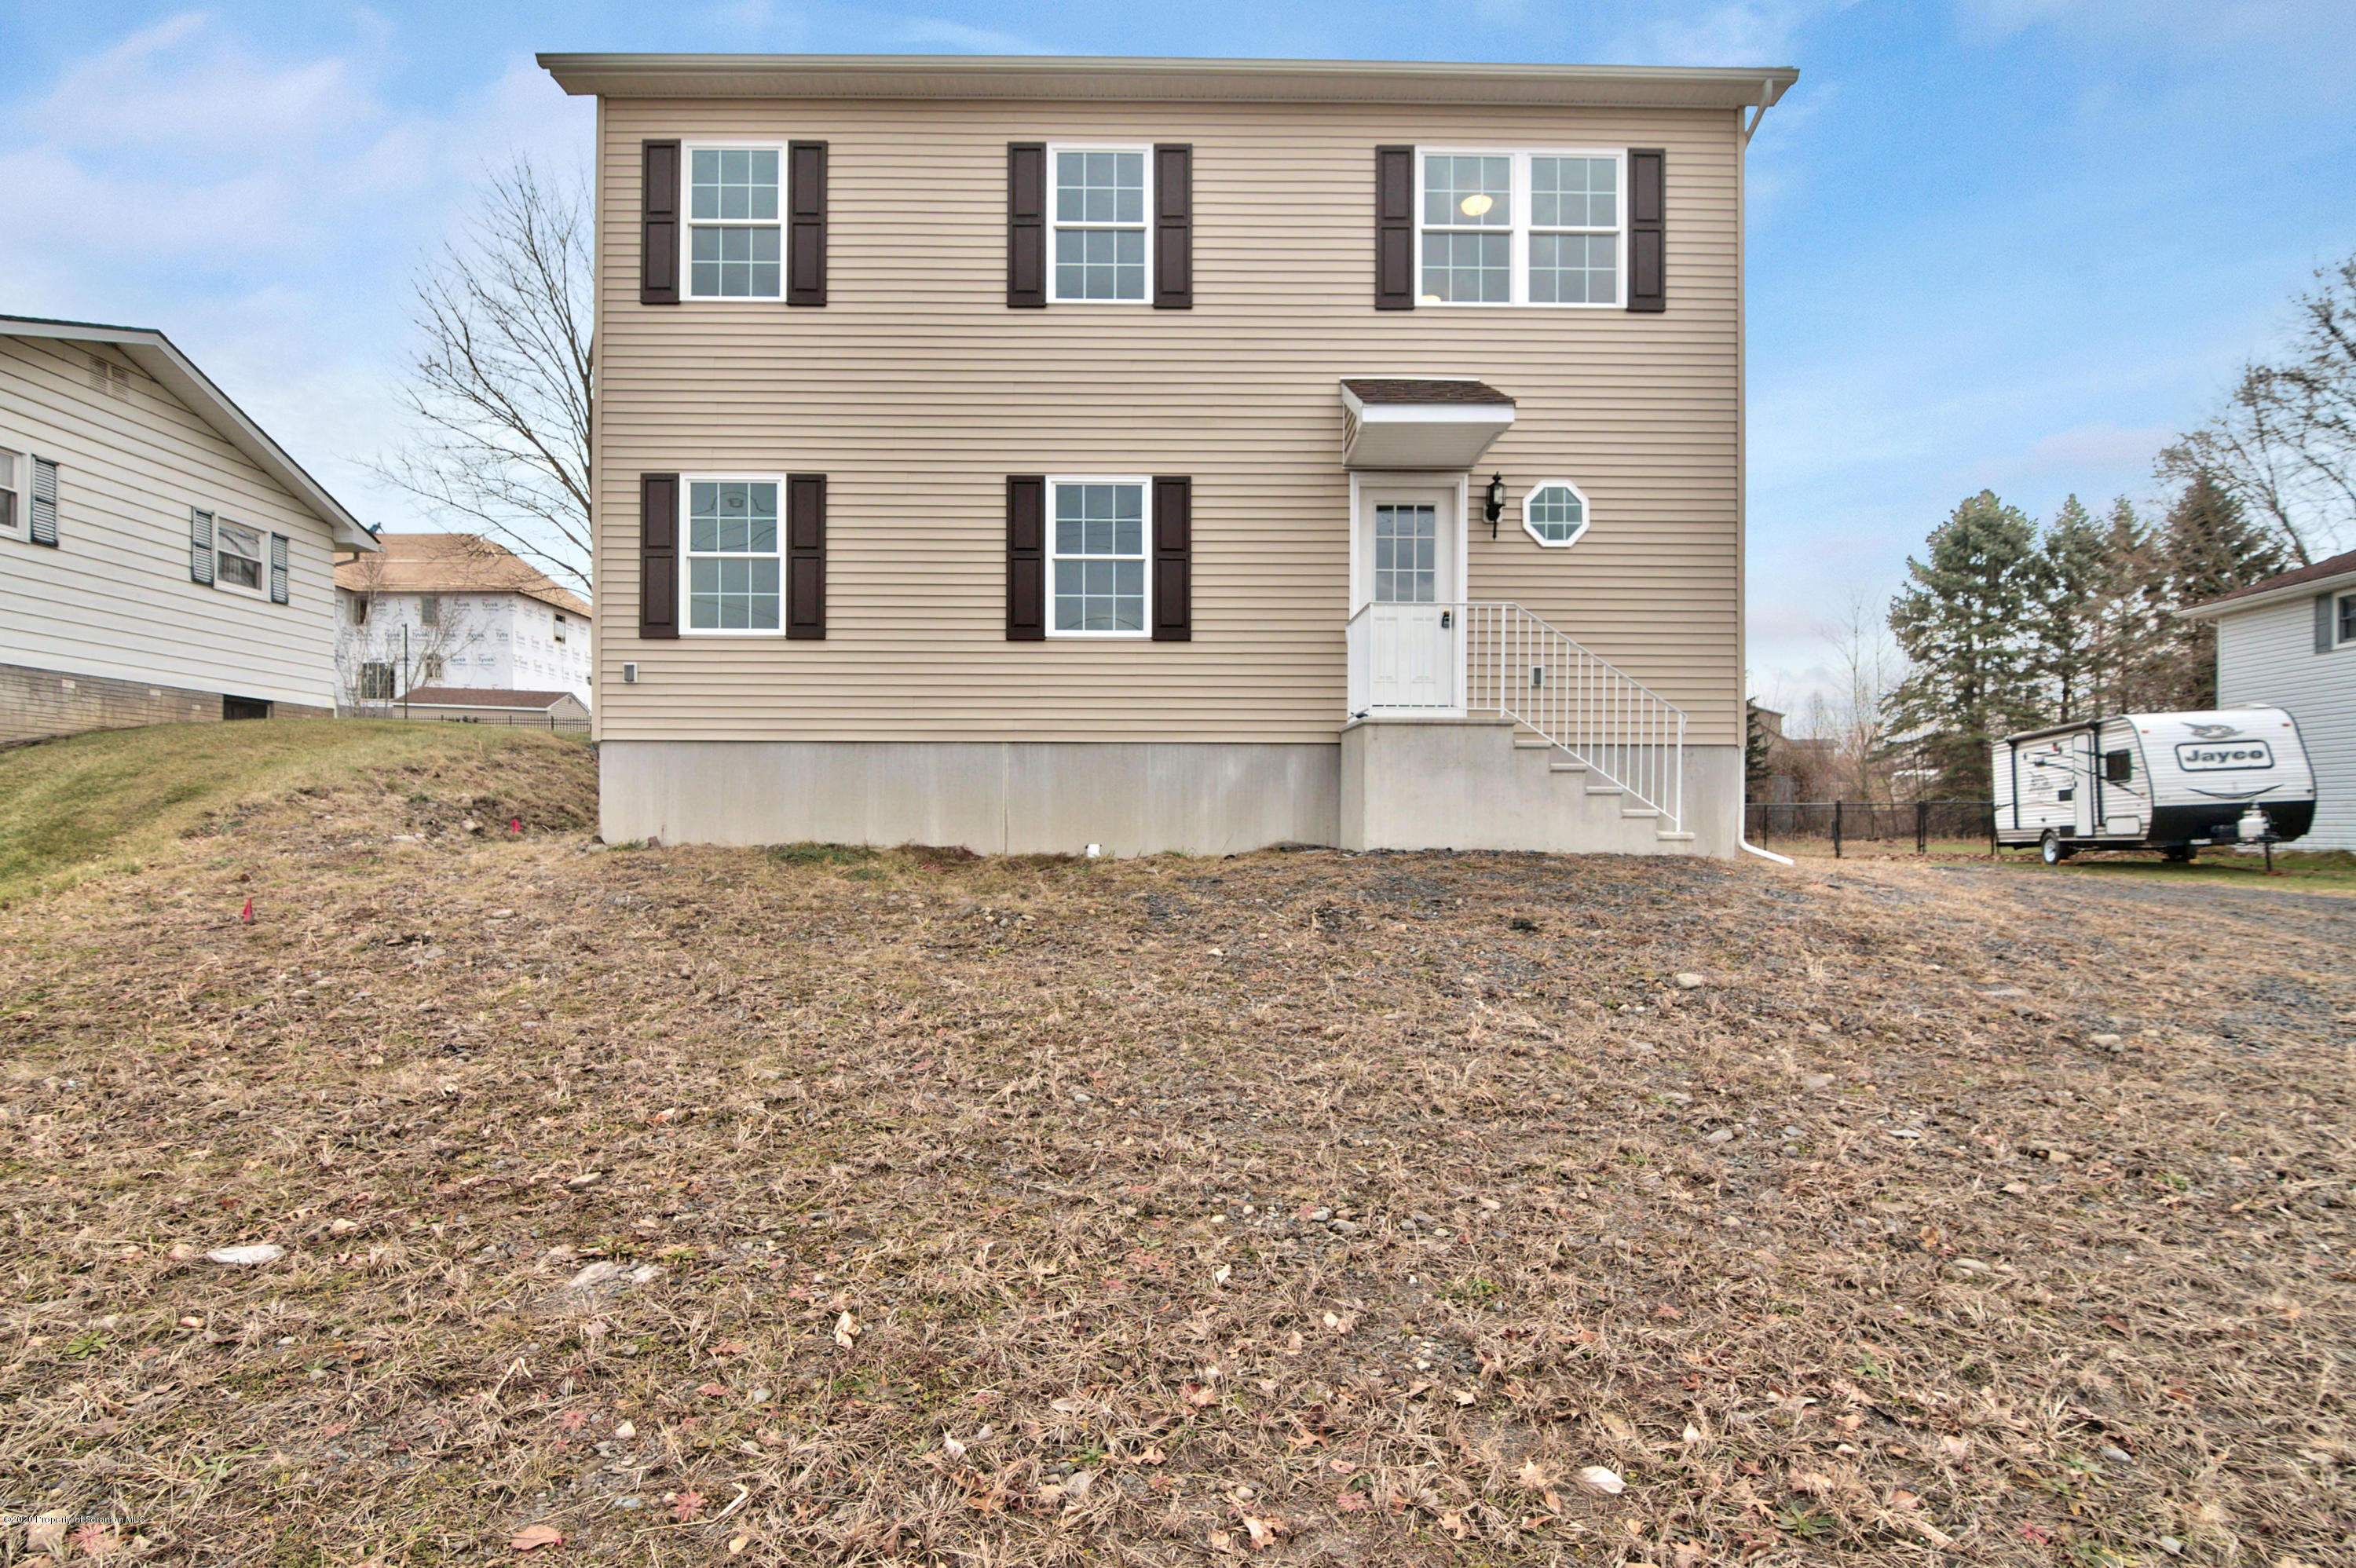 586 Milwaukee Ave, Old Forge, Pennsylvania 18518, 3 Bedrooms Bedrooms, 7 Rooms Rooms,3 BathroomsBathrooms,Single Family,For Sale,Milwaukee,20-211